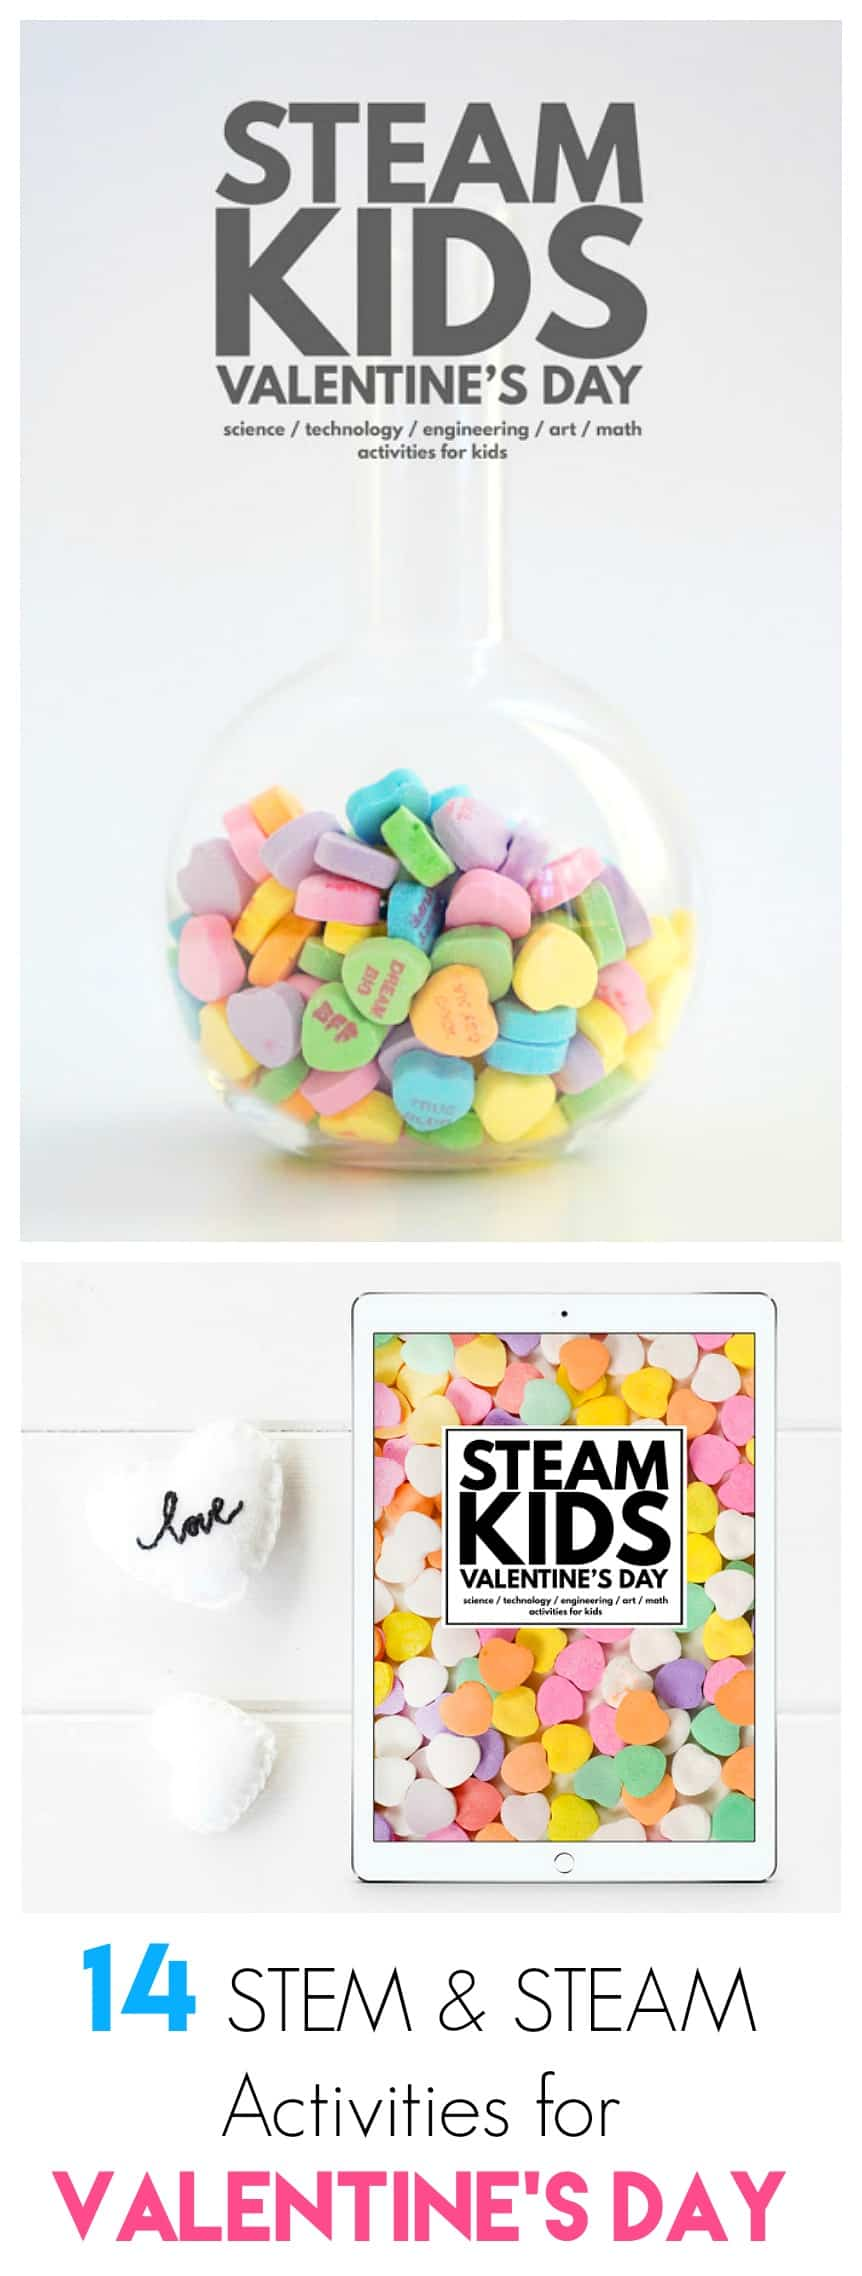 STEAM Kids Valentine's Day: STEAM / STEM activities for preschool, kindergarten, and elementary aged children! Including crystal hearts, magnets, rocket valentines, LED roses, and more!